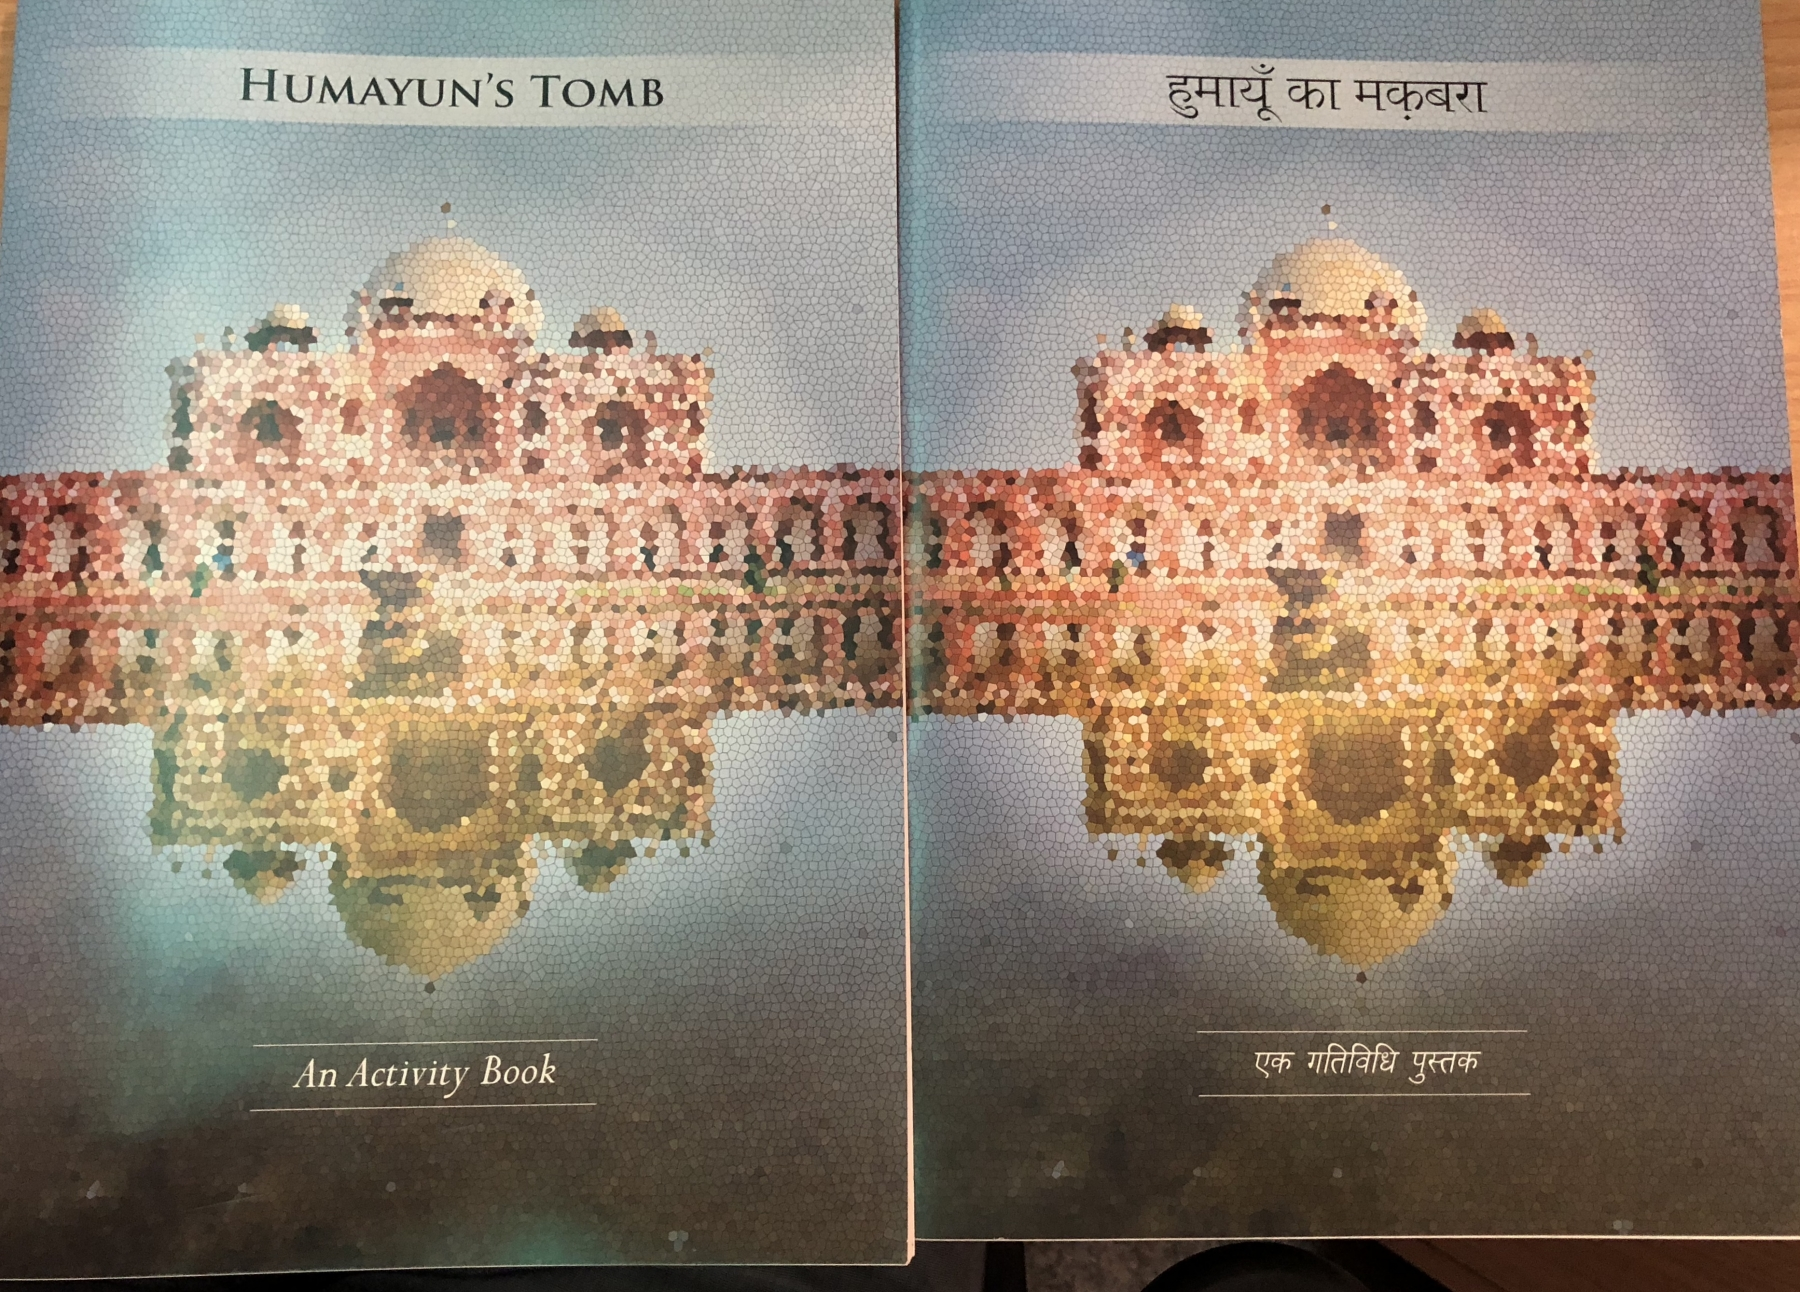 Photo of a bilingual English-Hindi activity book about Humayun's Tomb, depicting a mosaic of Humayun's Tomb on the cover.